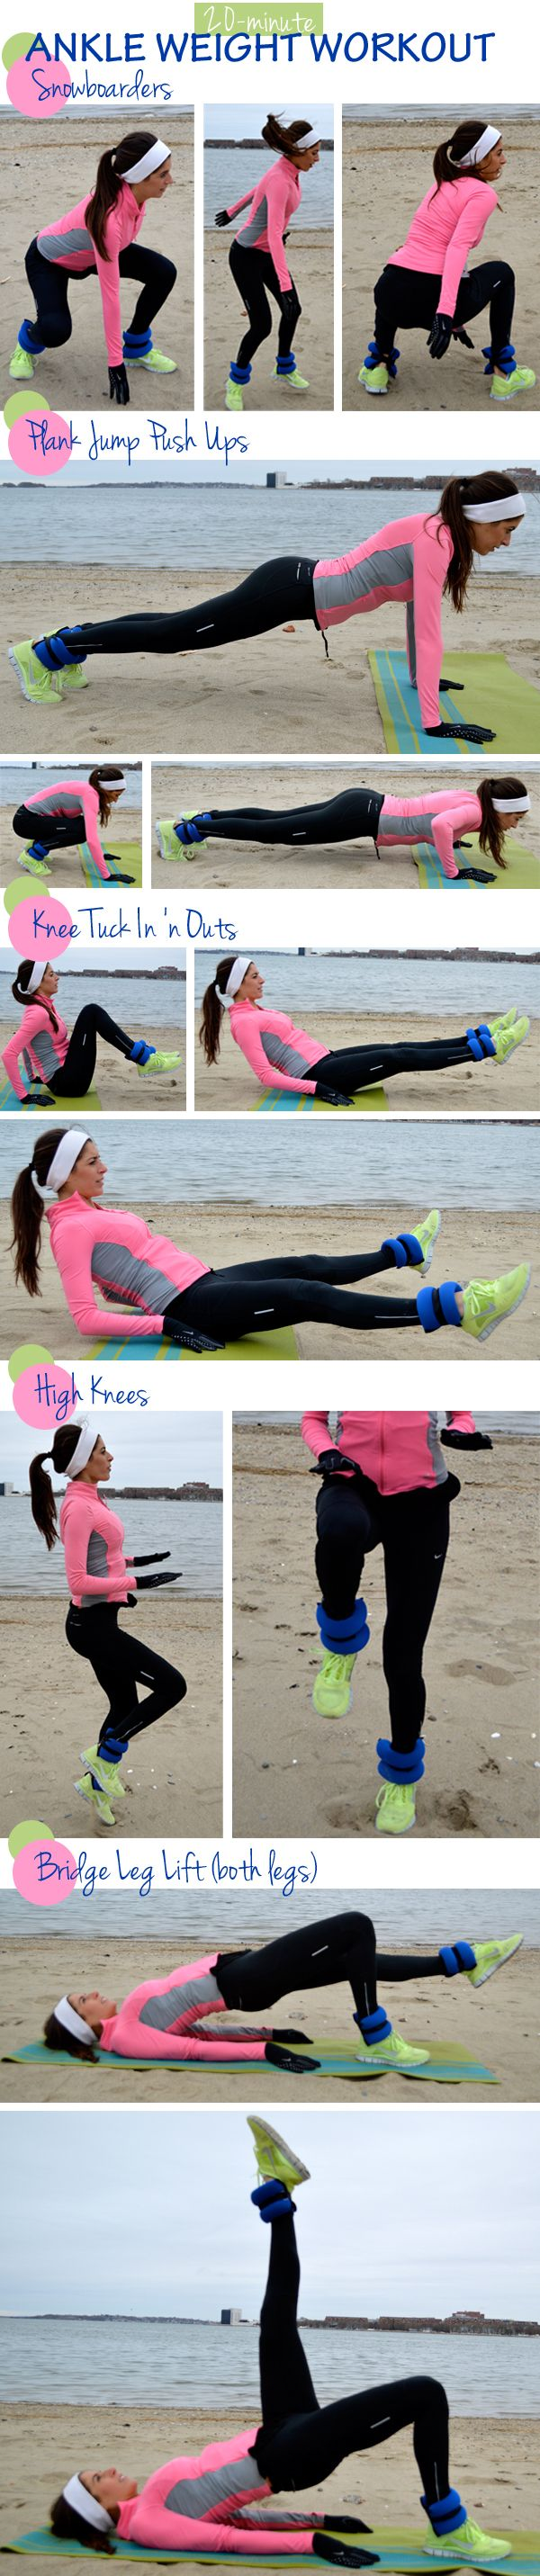 20-Minute Ankle Weight Workout www.gymra.com/... #fitness #exercise #weightloss #diet #fitspiration #fitspo #health